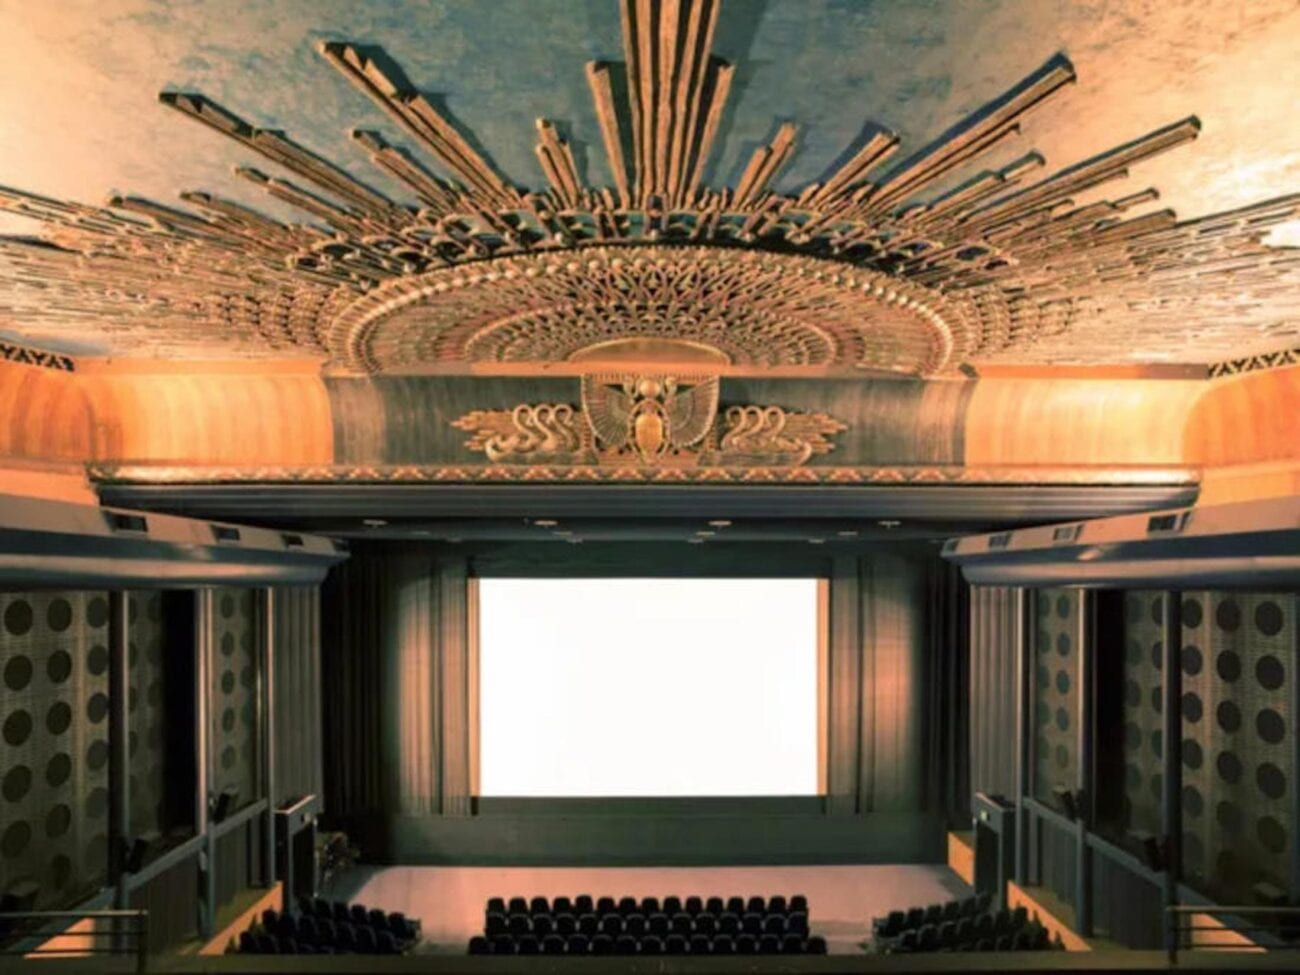 If you ask any sort of film nerd, movie theaters are vital. Here's what we know about the Egyptian Theater that Netflix is buying.